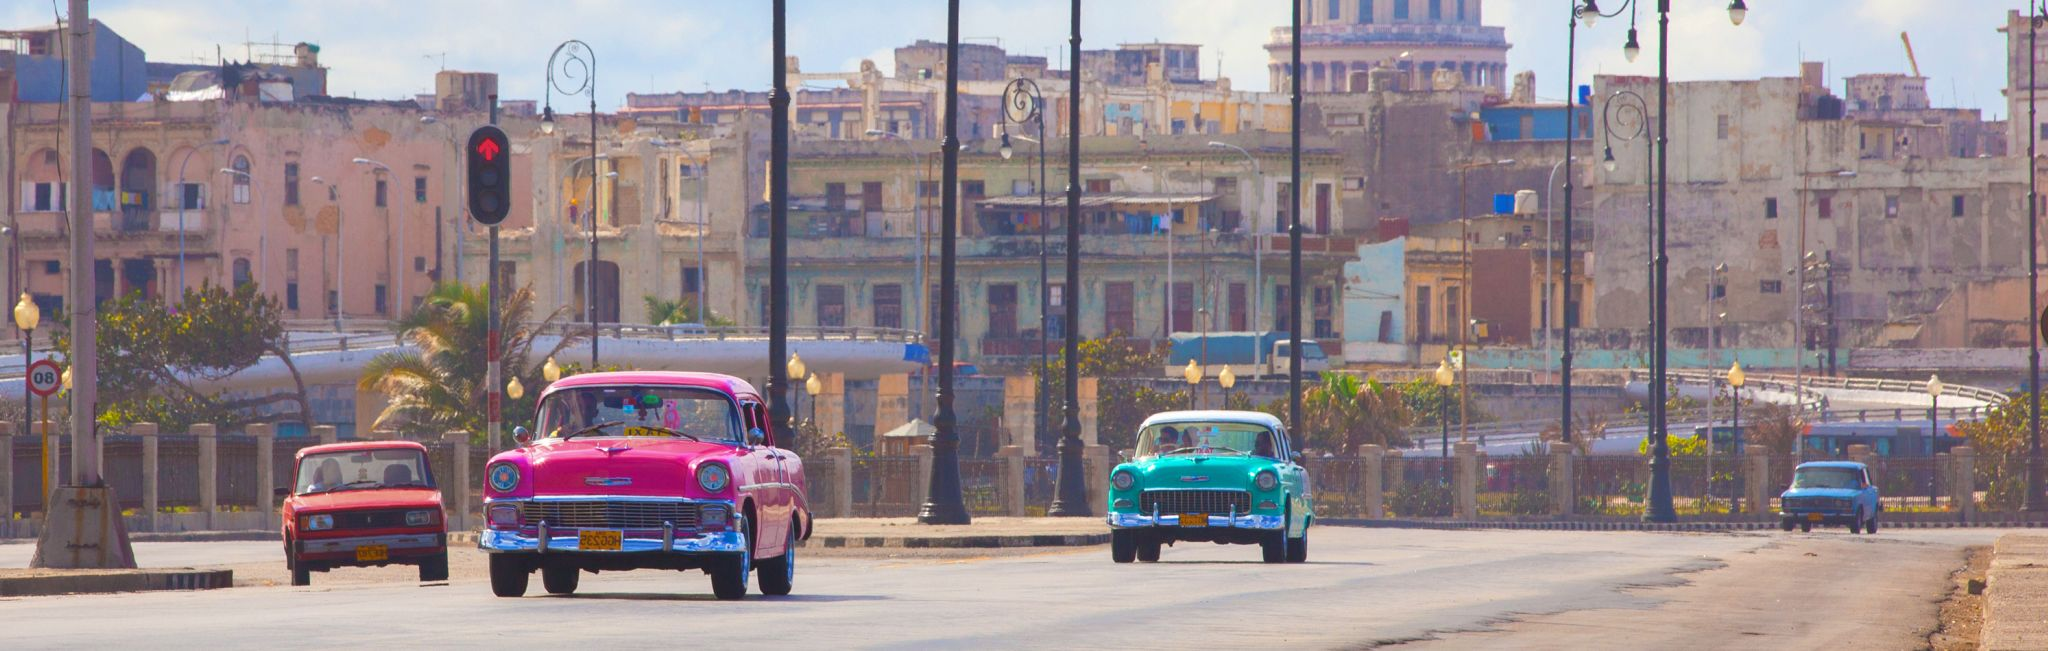 Best Cuba Tours Vacations Travel Packages - Cuba tours reviews